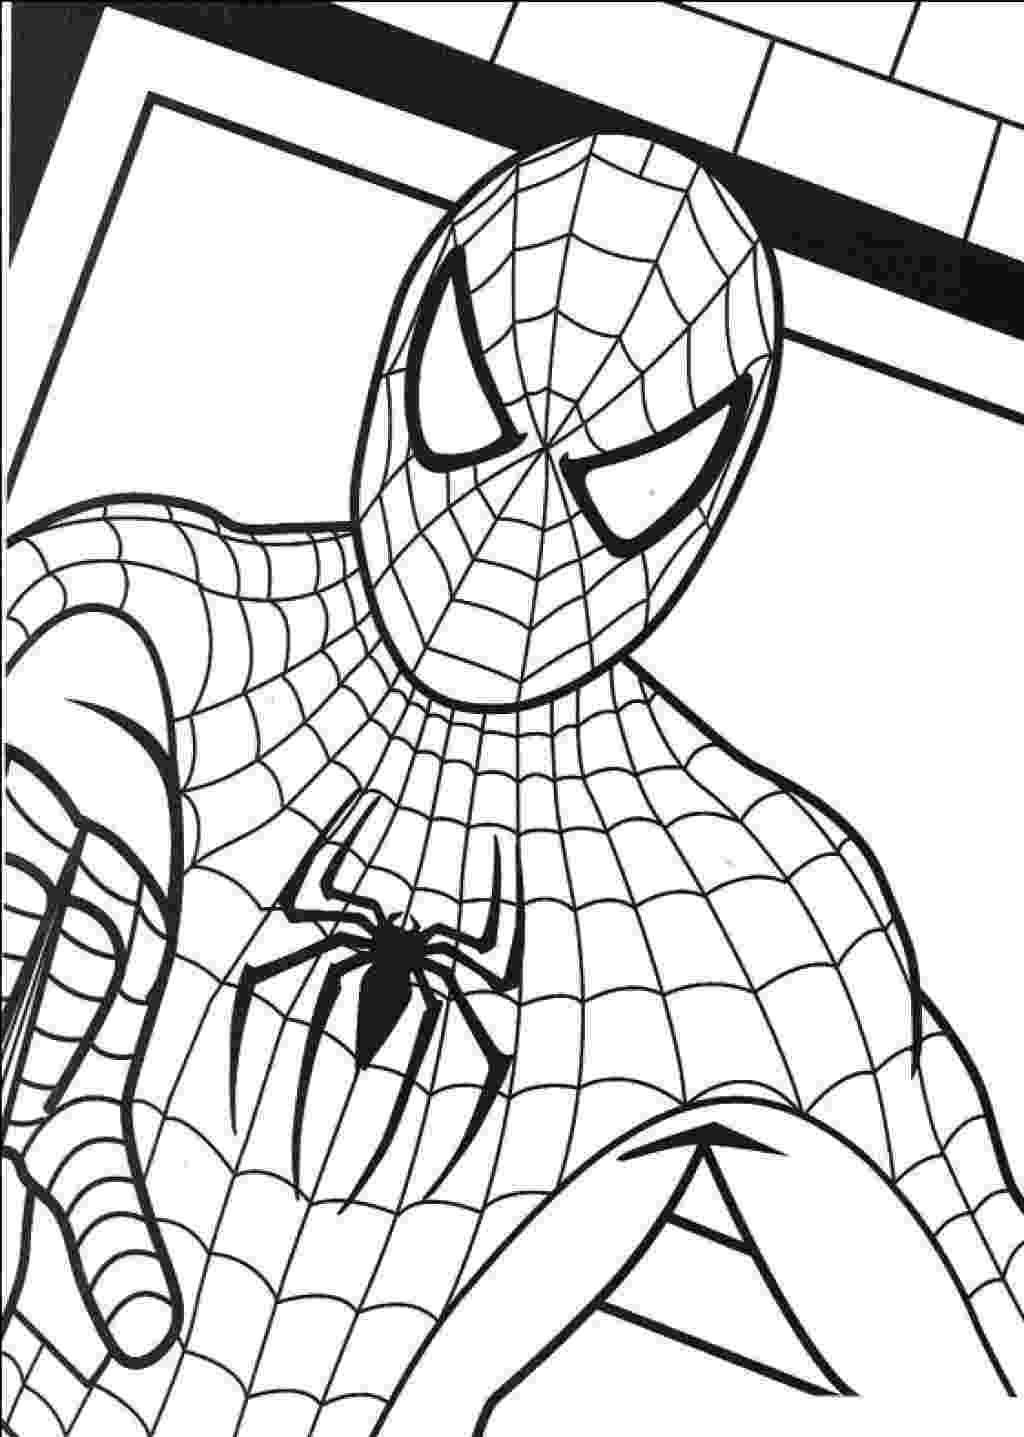 spiderman colouring pages printable printable spiderman coloring pages for kids cool2bkids printable colouring pages spiderman